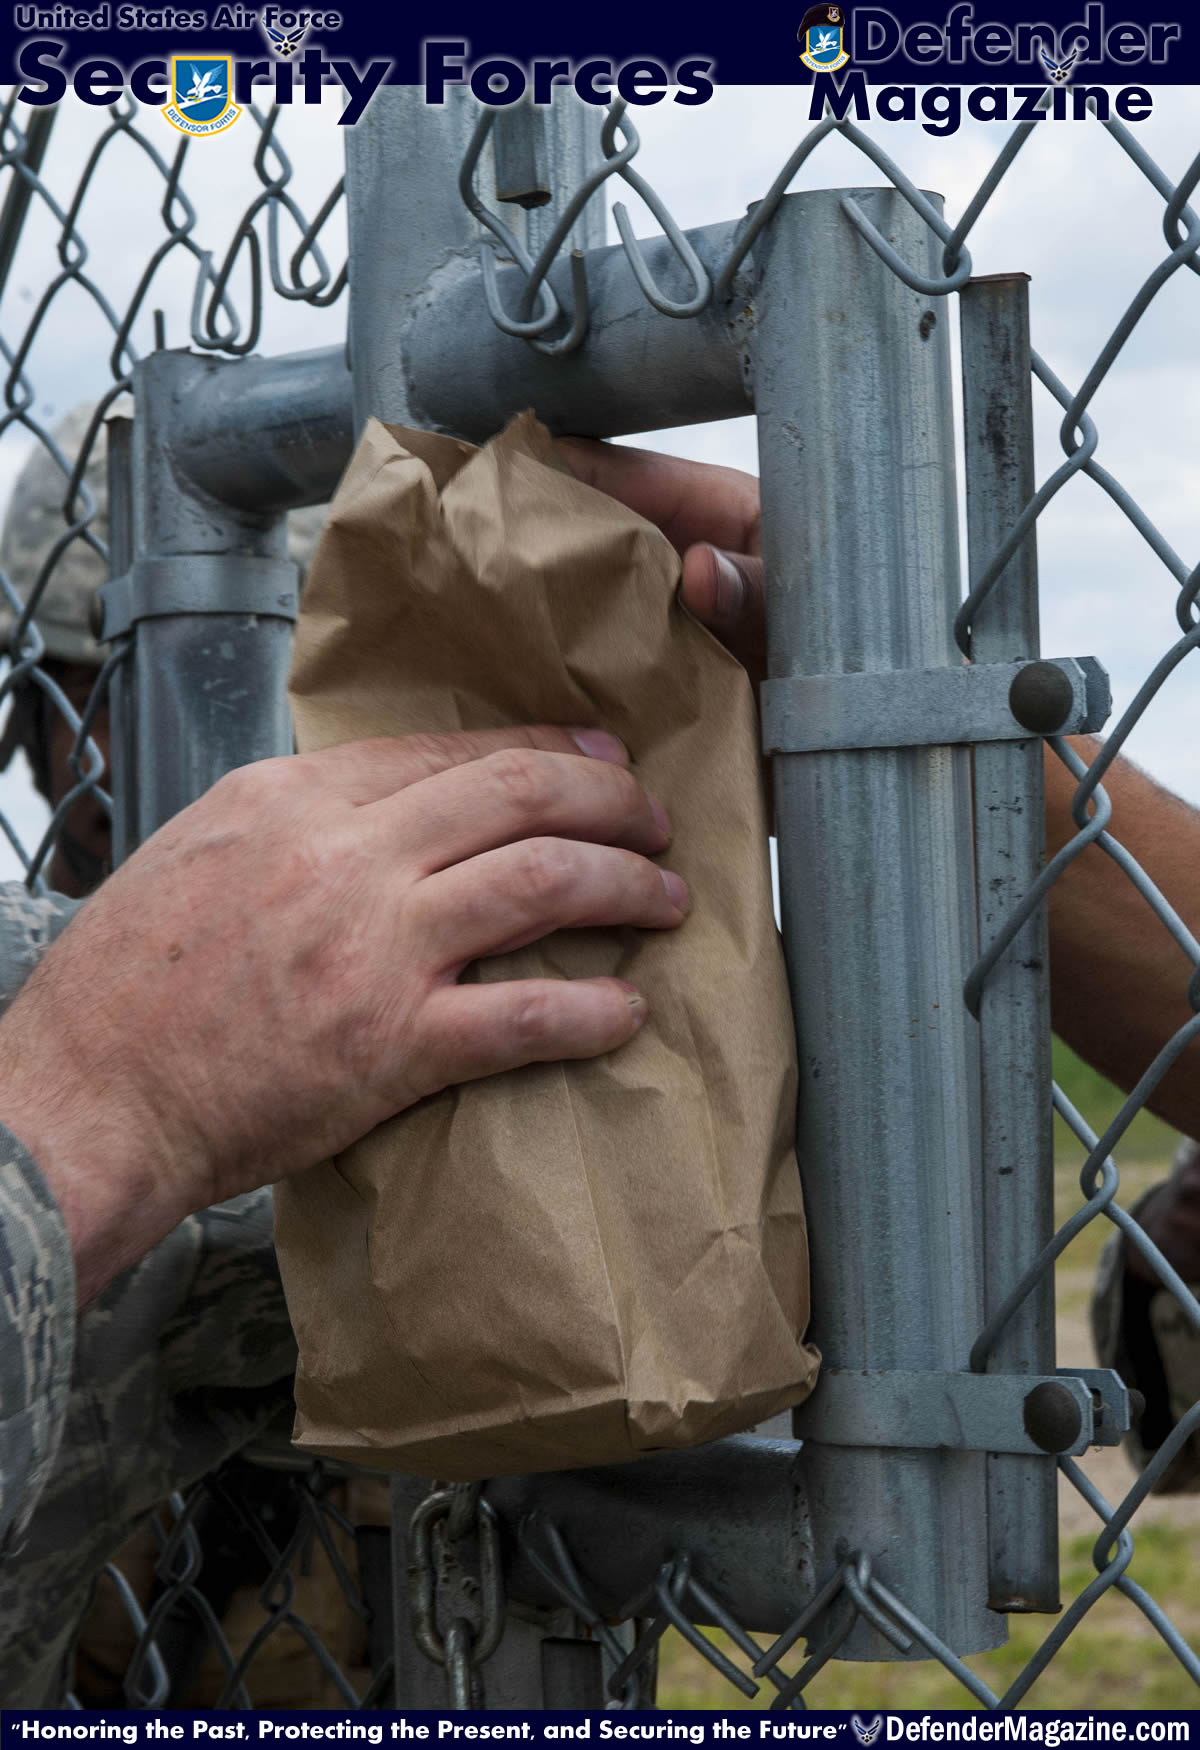 Food is passed through the gate at a launch facility during a morale visit to the missile complex in North Dakota, July 30, 2014. During their regular operations, 791st Airmen patrol the missile complex, and guard teams who are performing regular maintenance to the different sights and assets for upkeep. (U.S. Air Force photo/Senior Airman Stephanie Morris)